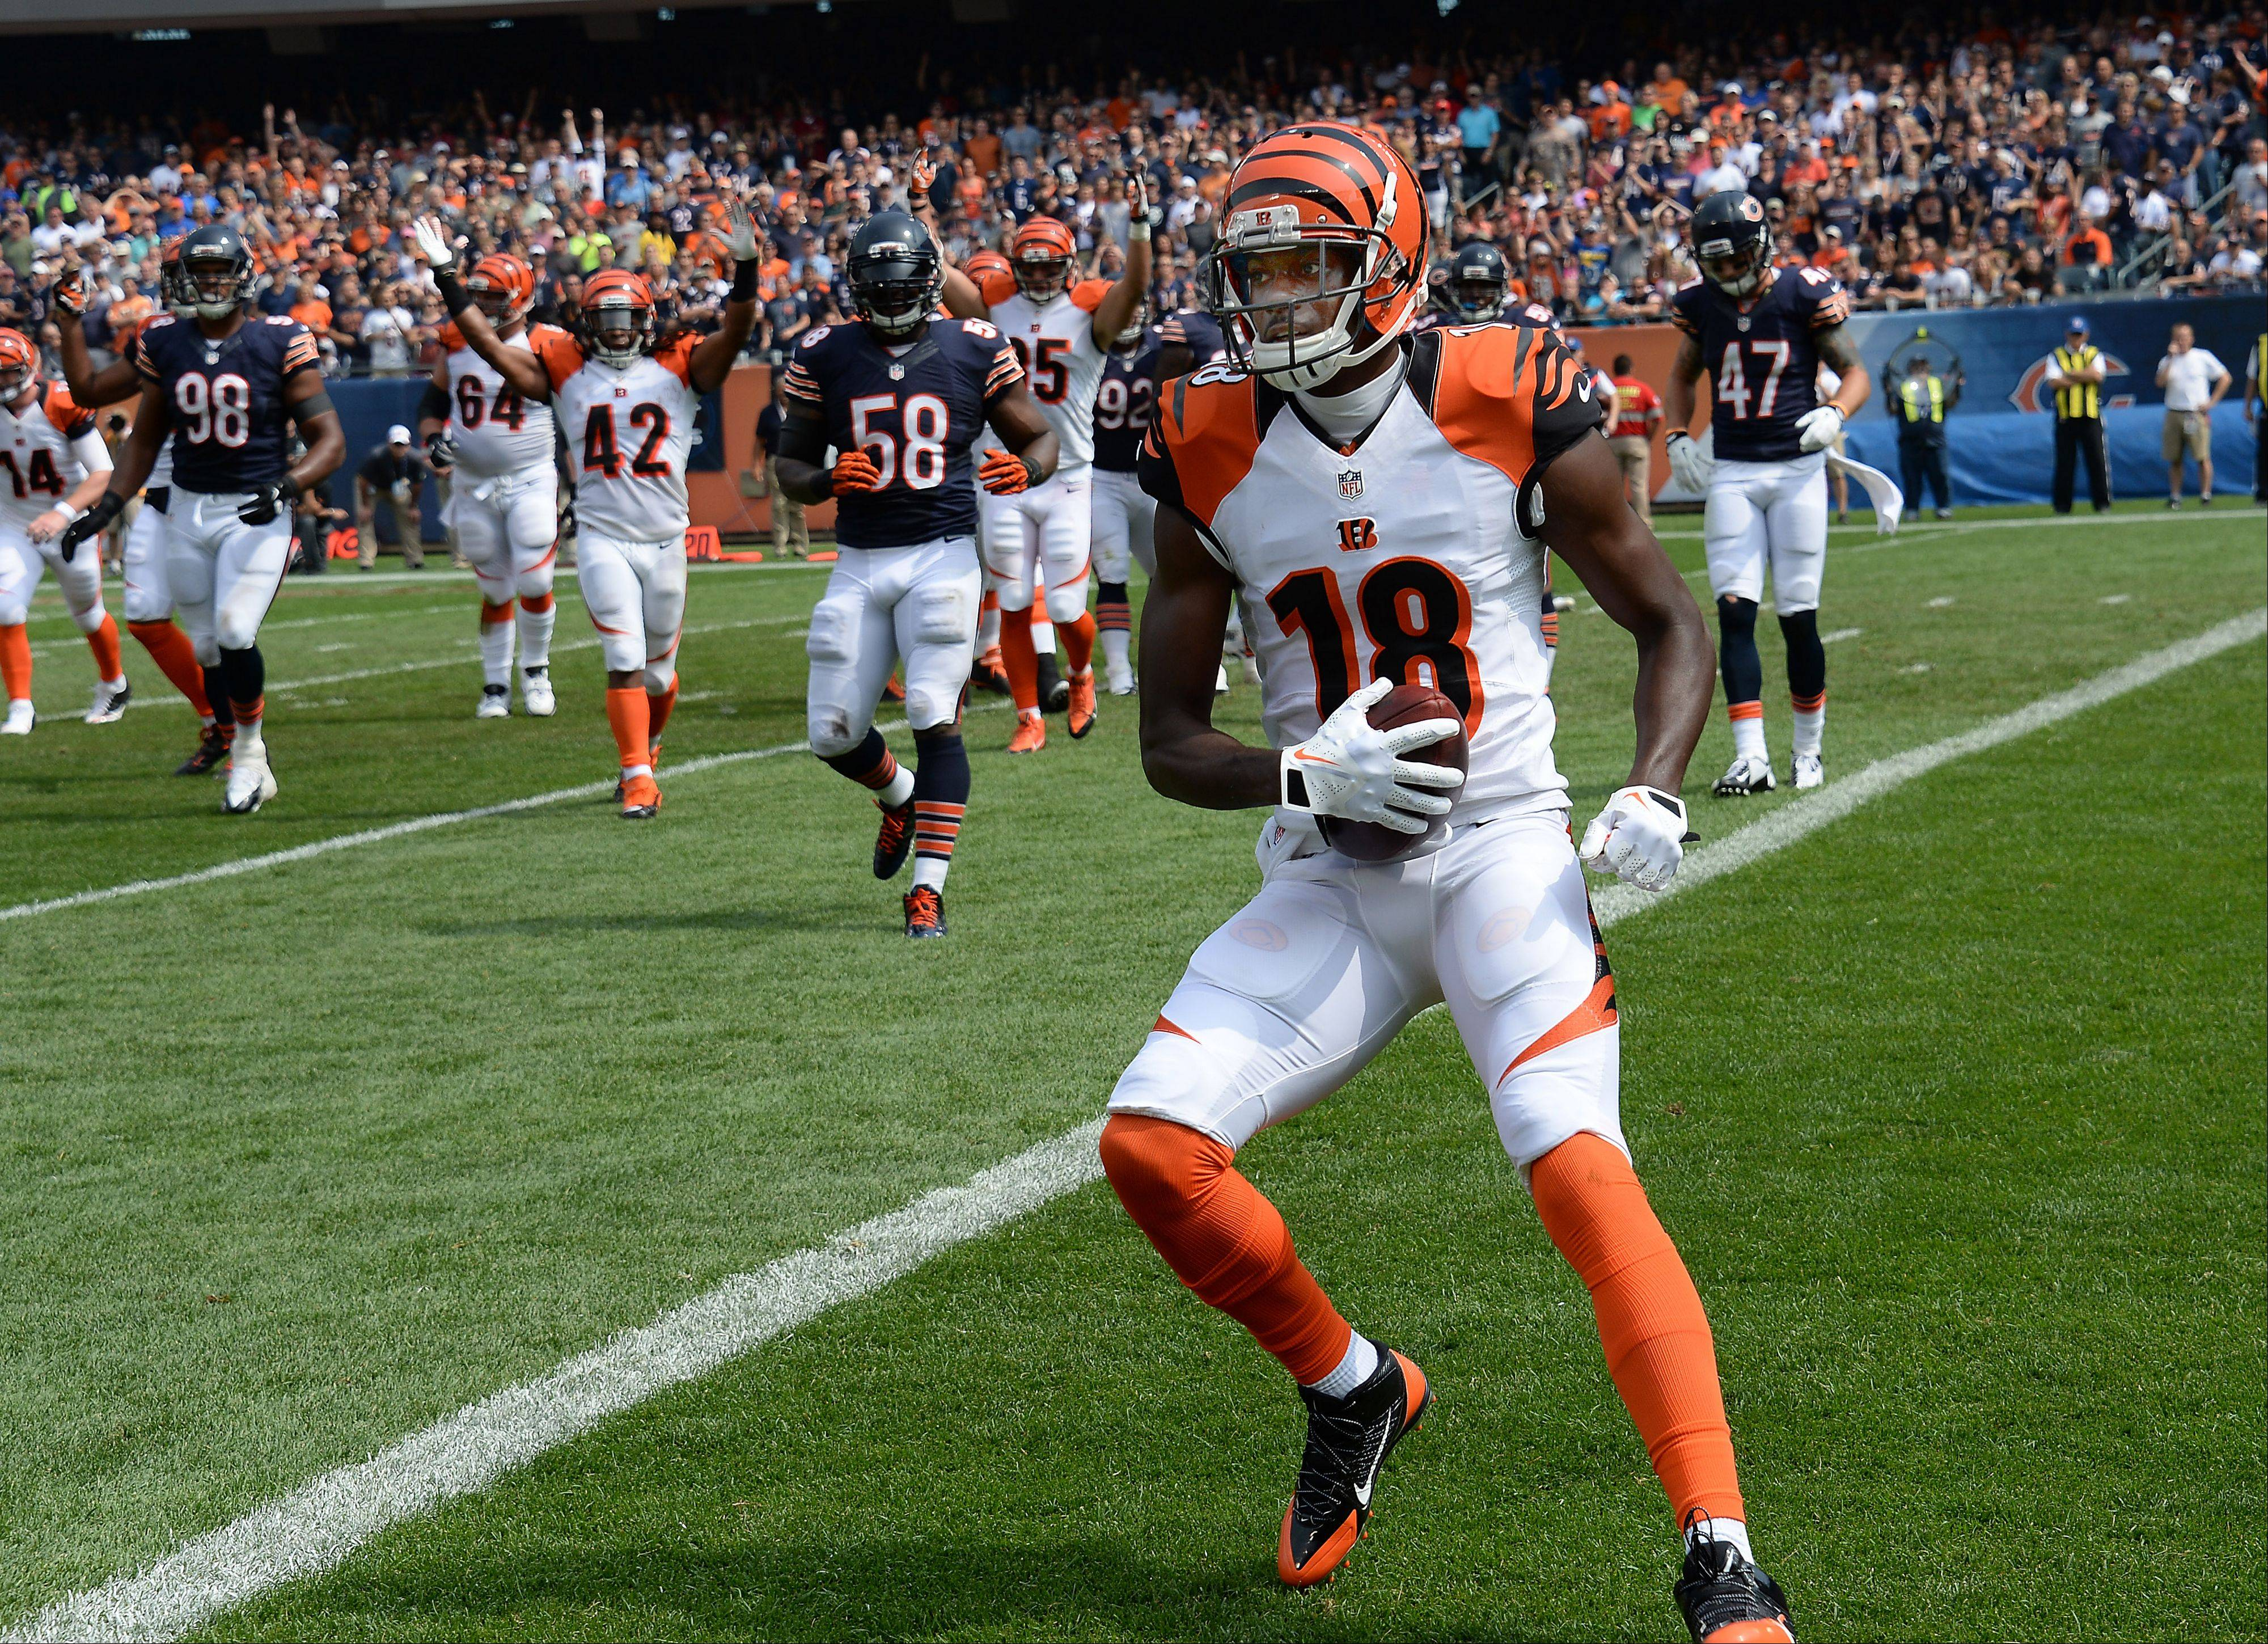 Chicago Bears defense breaks down on this touchdown by Cincinnati Bengals A.J. Green in the season opener at Soldier Field in Chicago on Sunday.